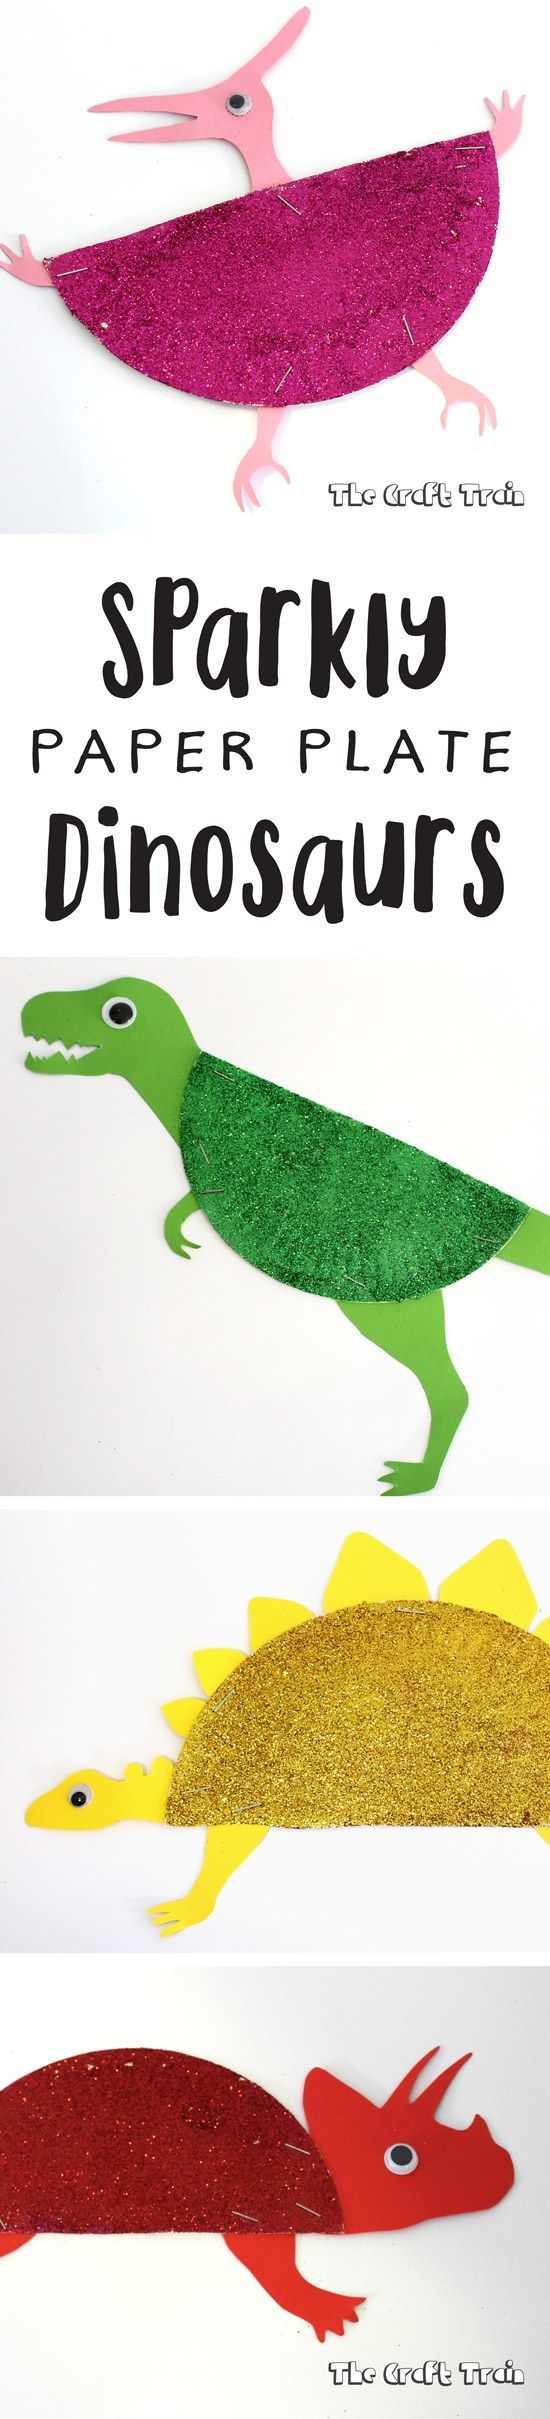 Dinosaur arts and crafts - Sparkly Paper Plate Dinosaur Craft With Free Printable Template